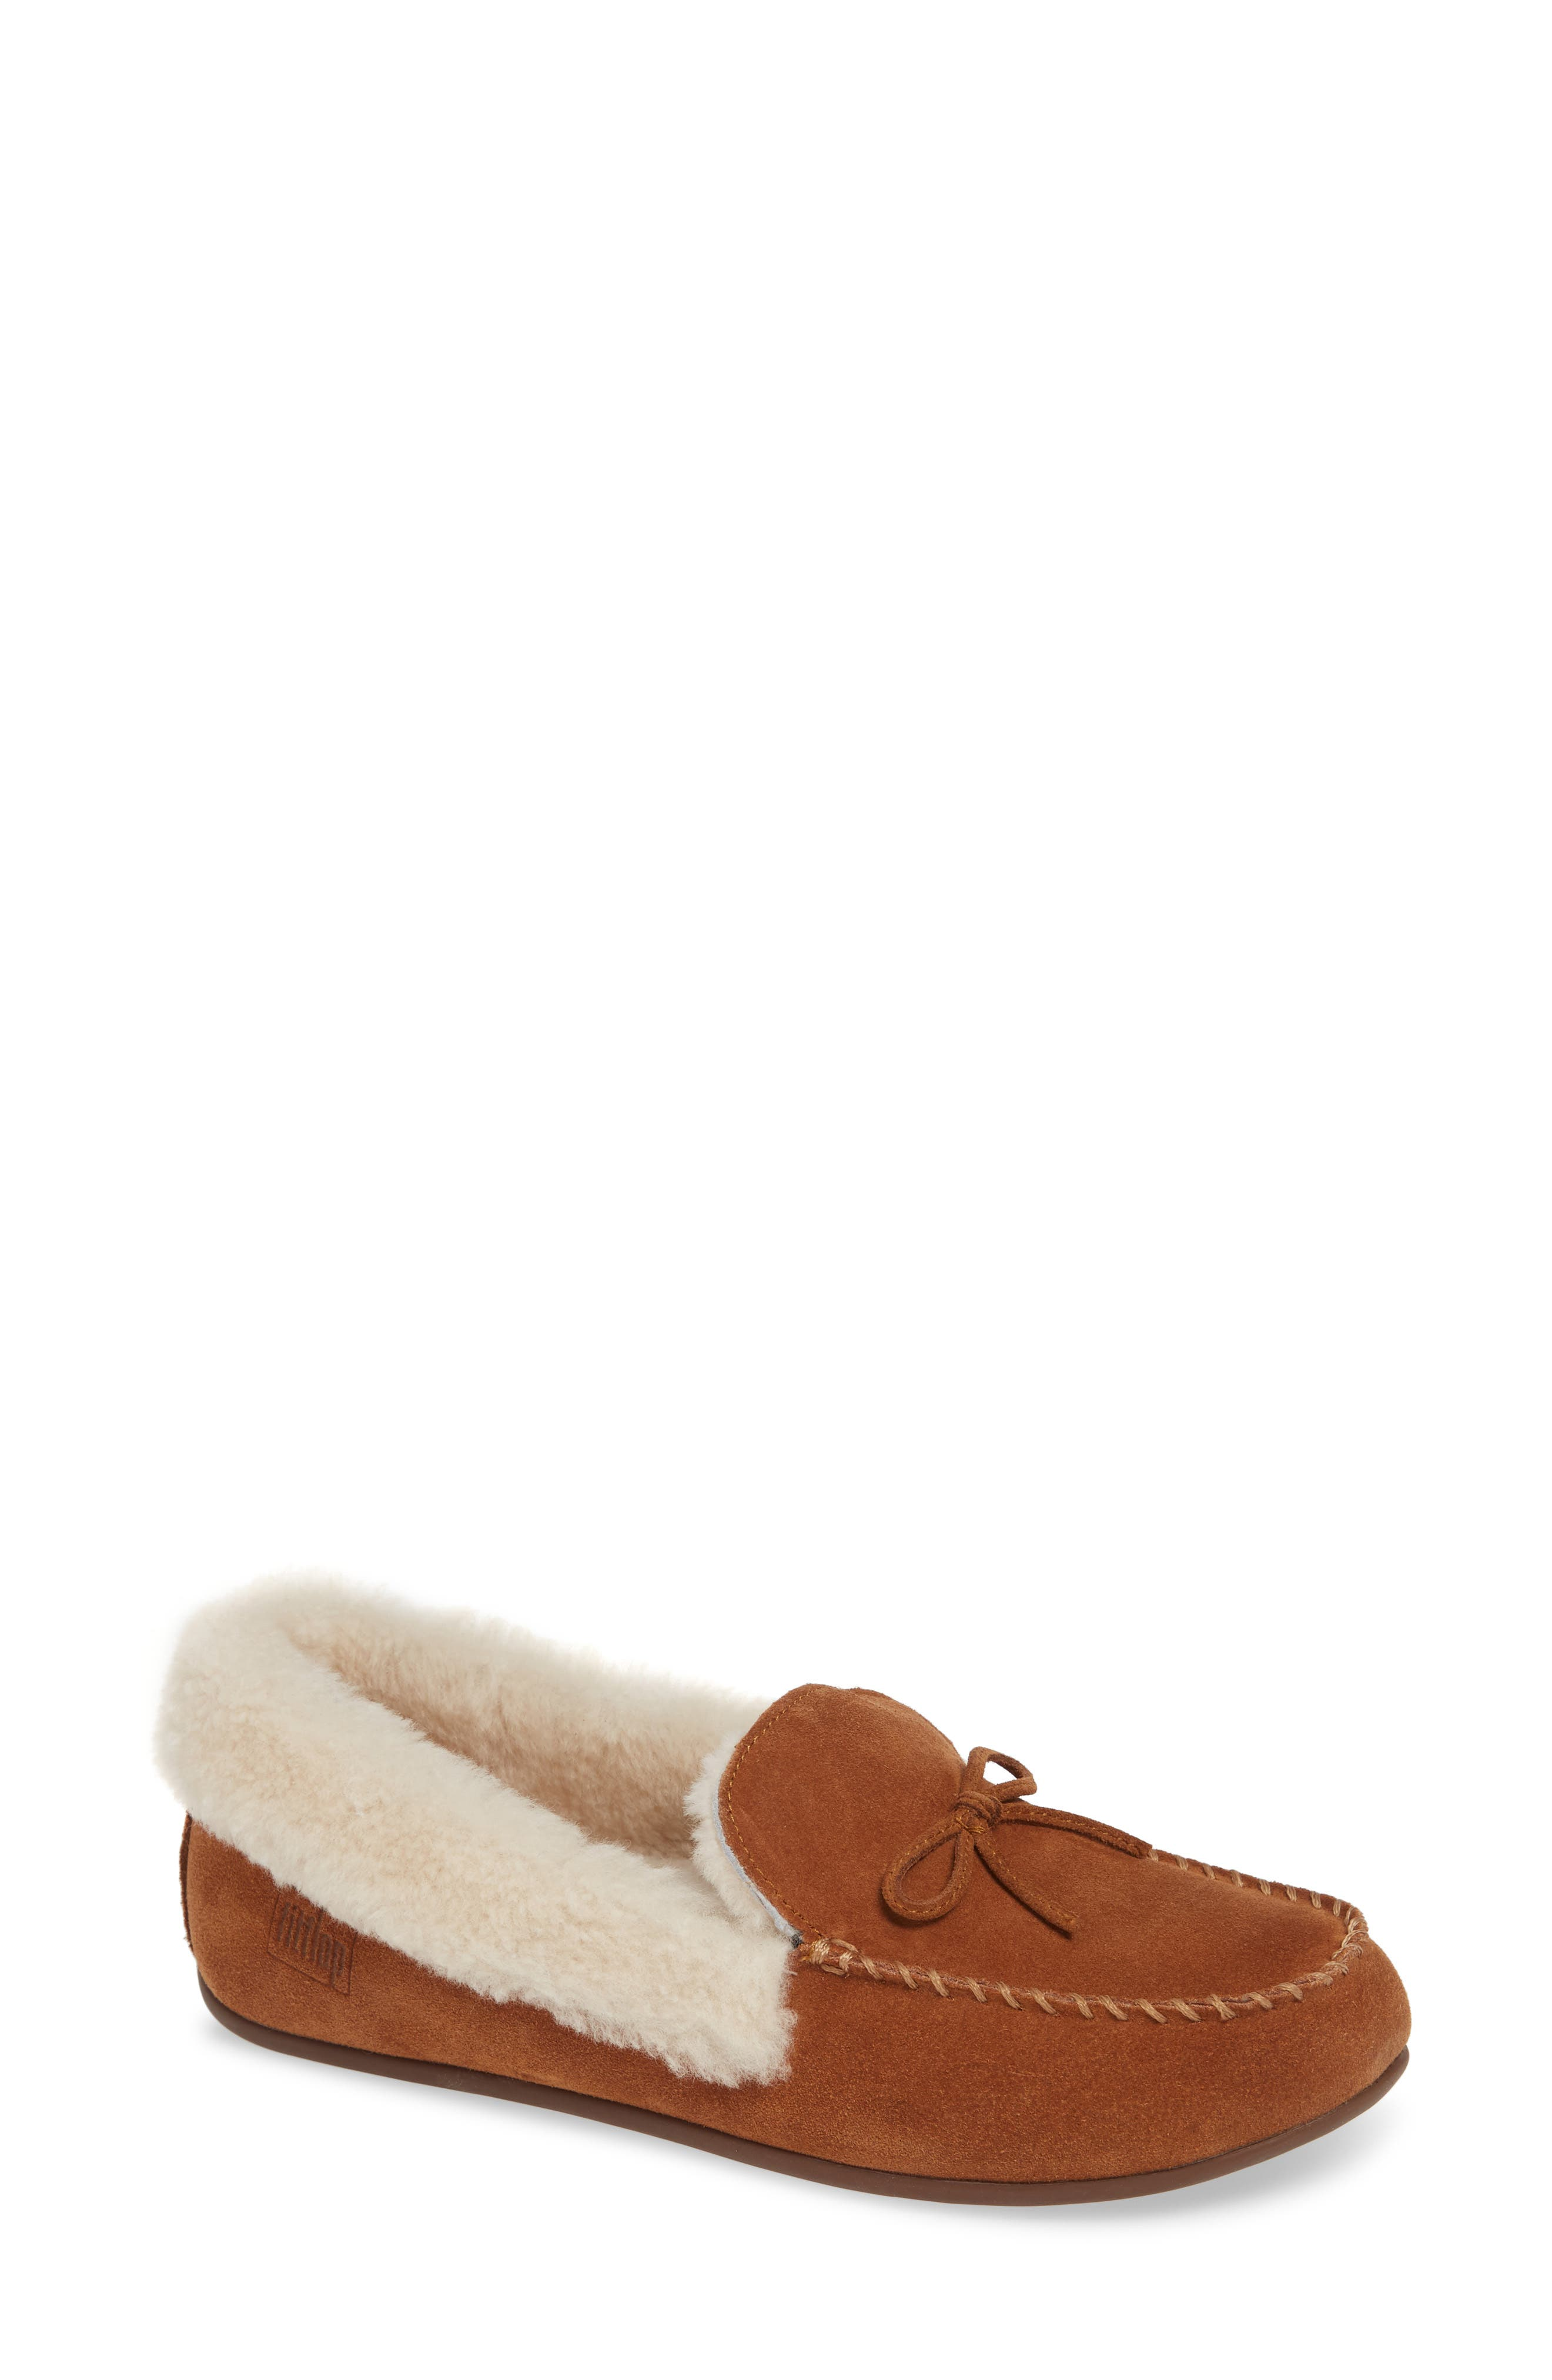 Clara Genuine Shearling Lined Moccasin,                             Main thumbnail 1, color,                             TUMBLED TAN SUEDE